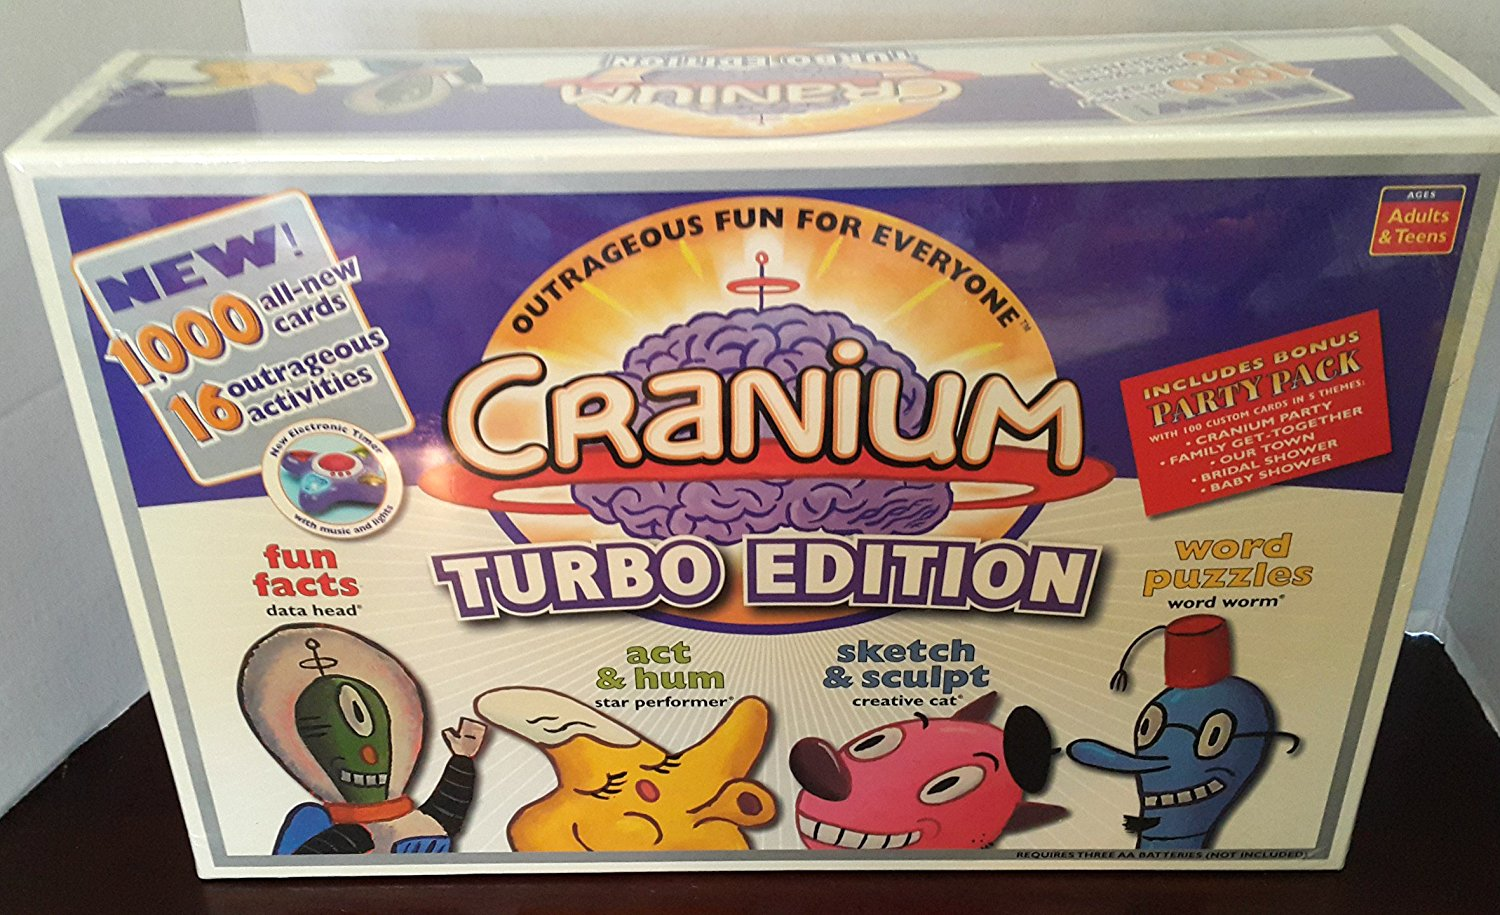 Turbo Edition, It is the deluxe version of Cranium that cranks up outrageous fun with even more New ways to... by